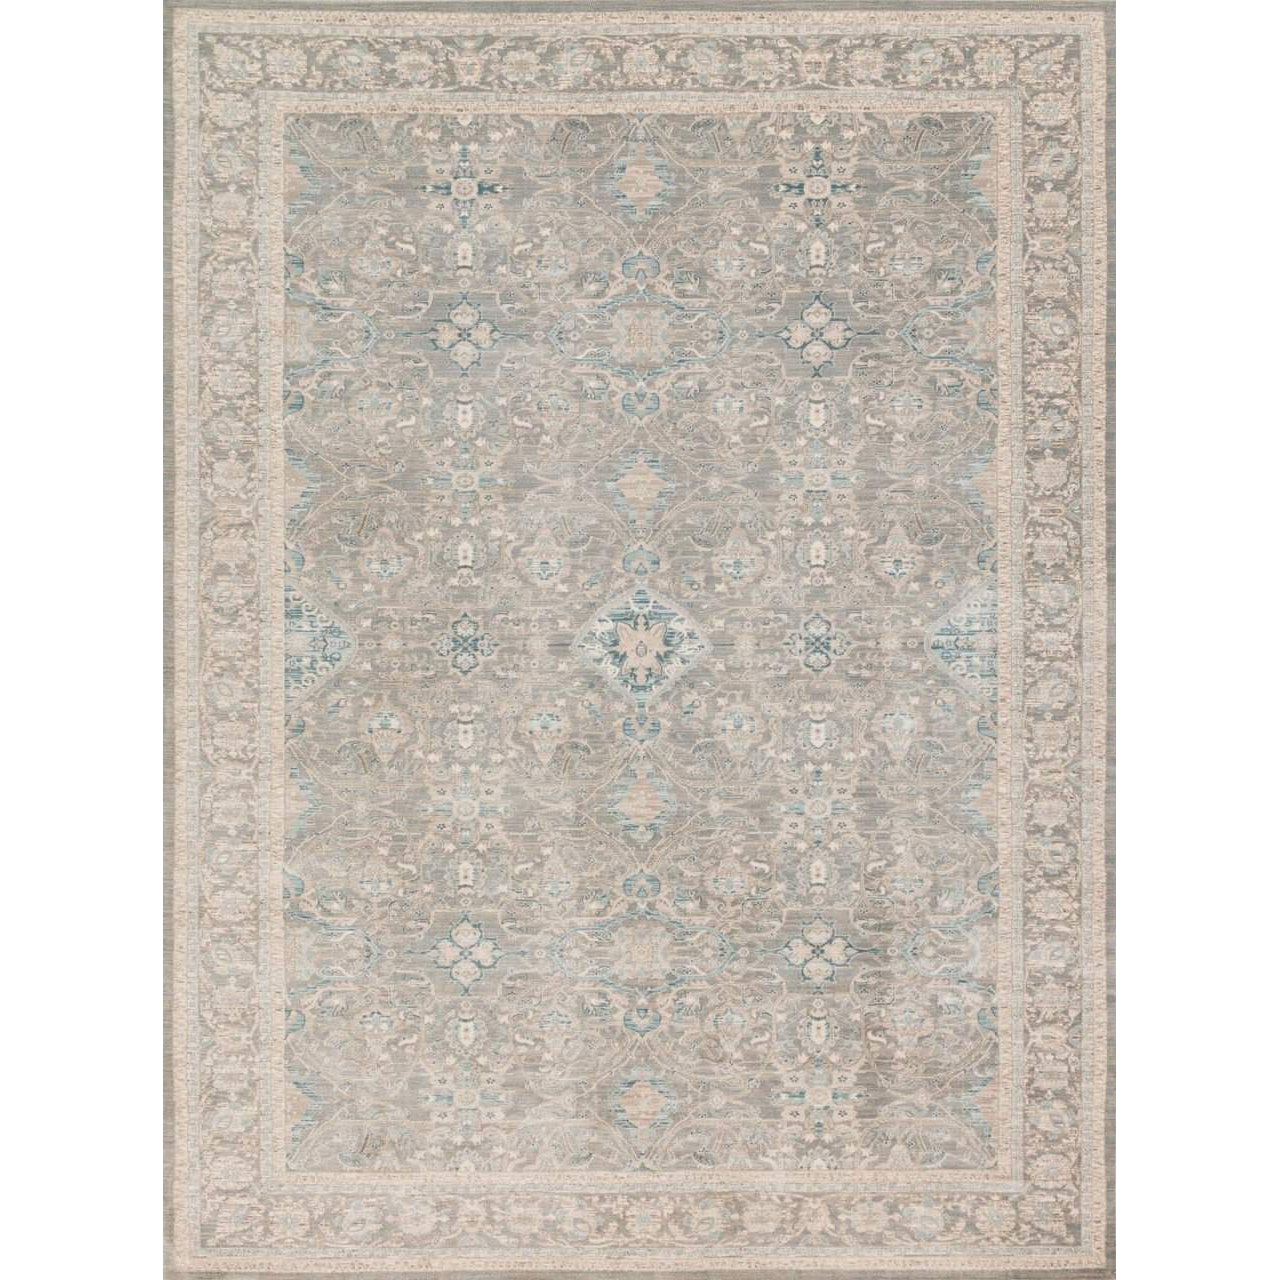 Joanna Gaines Magnolia Home Rug - Ella Rose Collection - Steel / Steel - Blue Hand Home